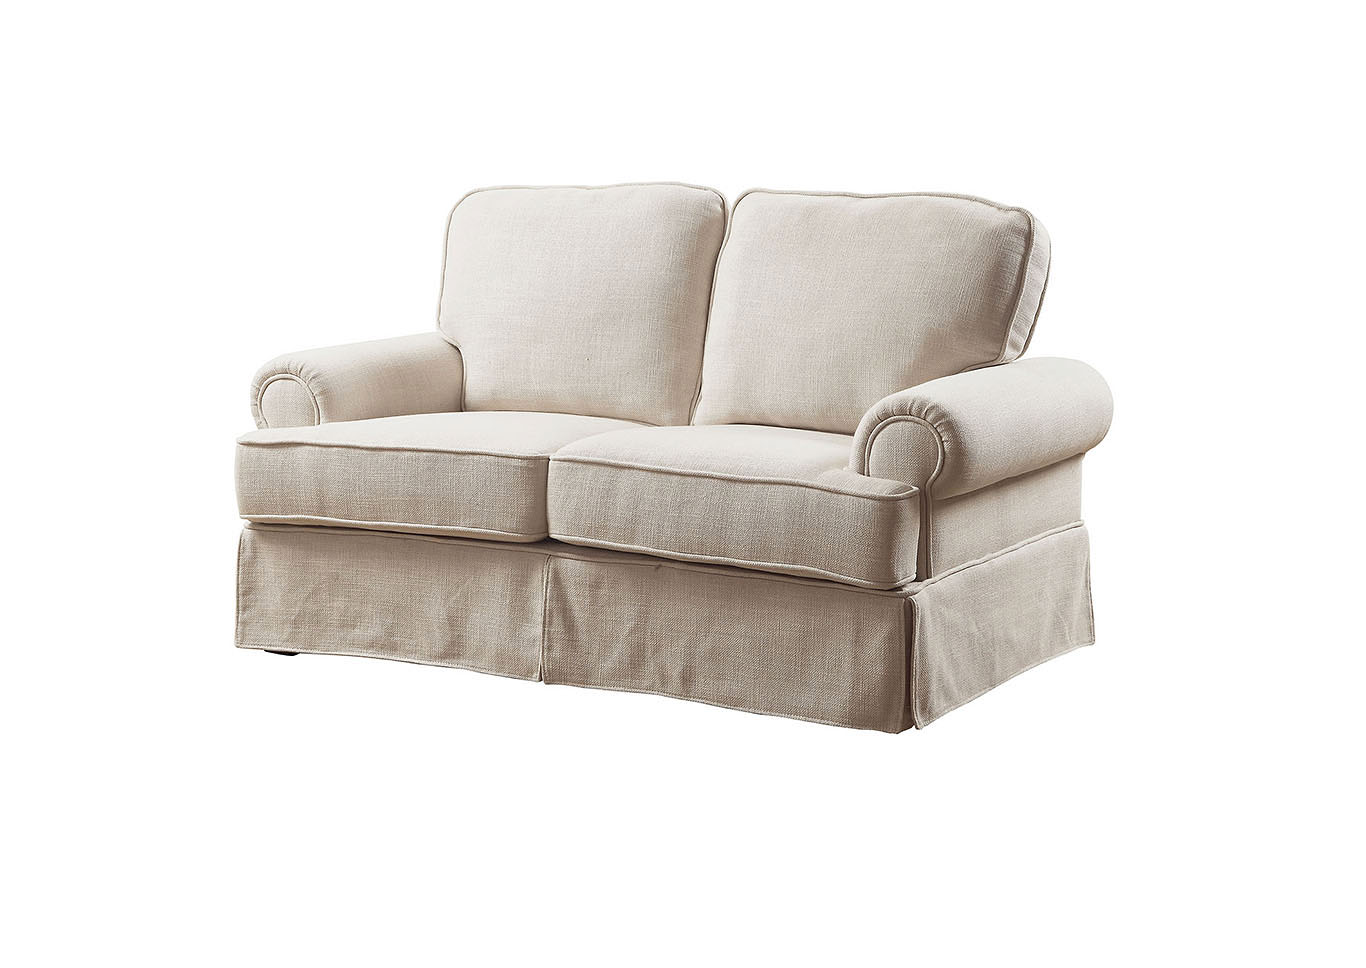 Badalona I Beige Loveseat,Furniture of America